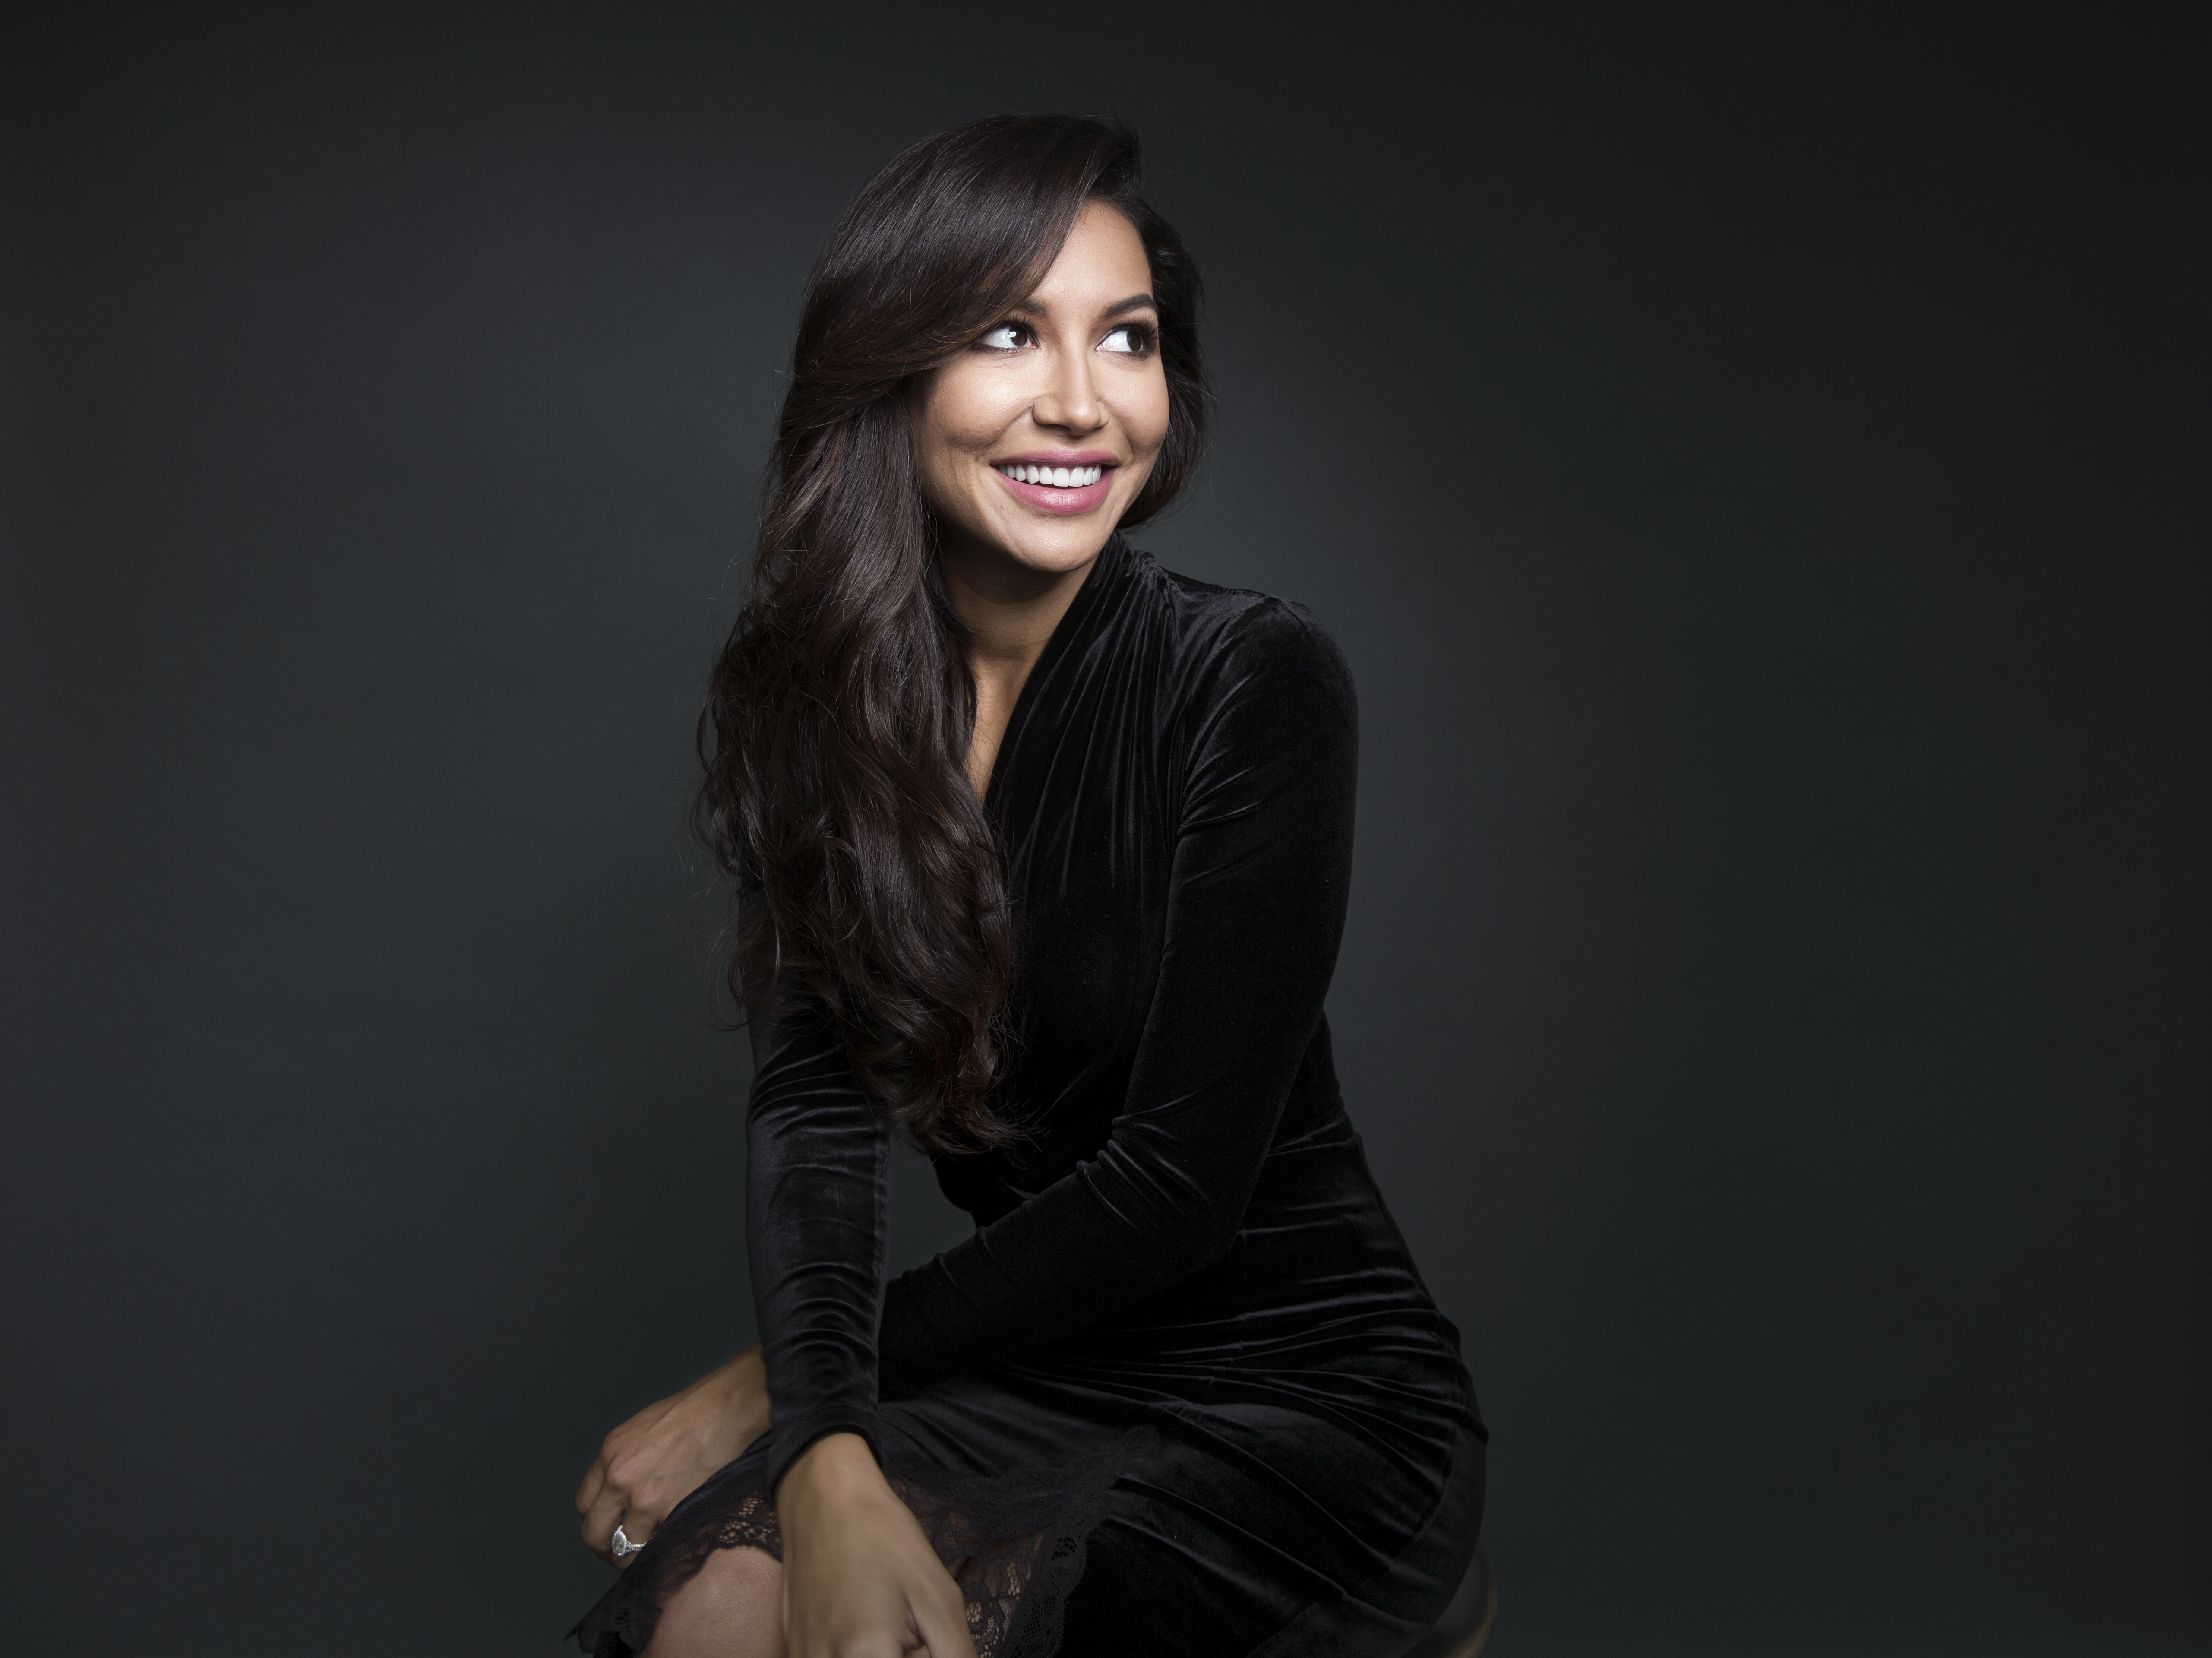 Naya Rivera For Desktop Background